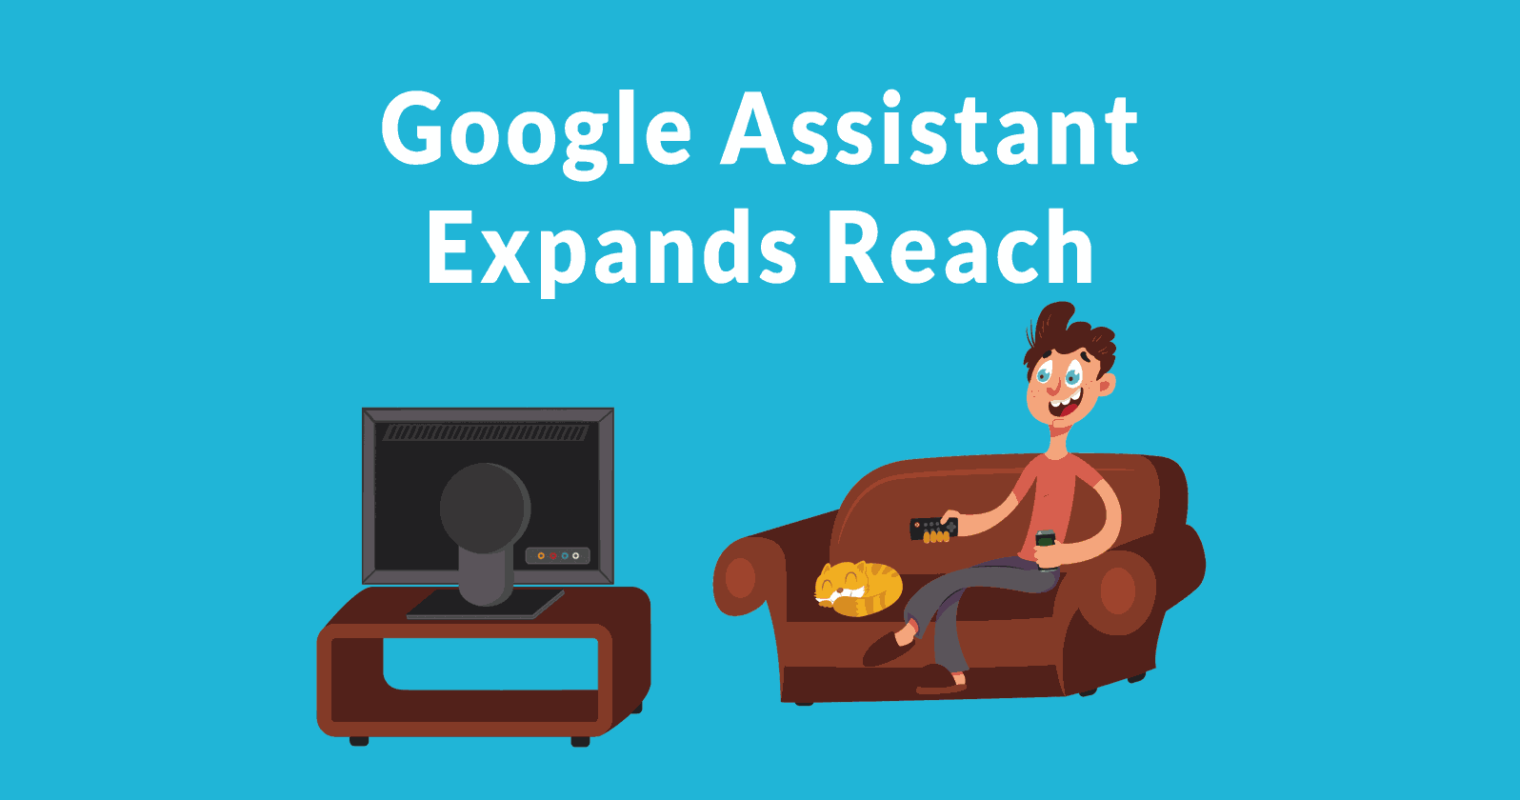 Google Assistant Comes to DISH TV – What this Means for Search